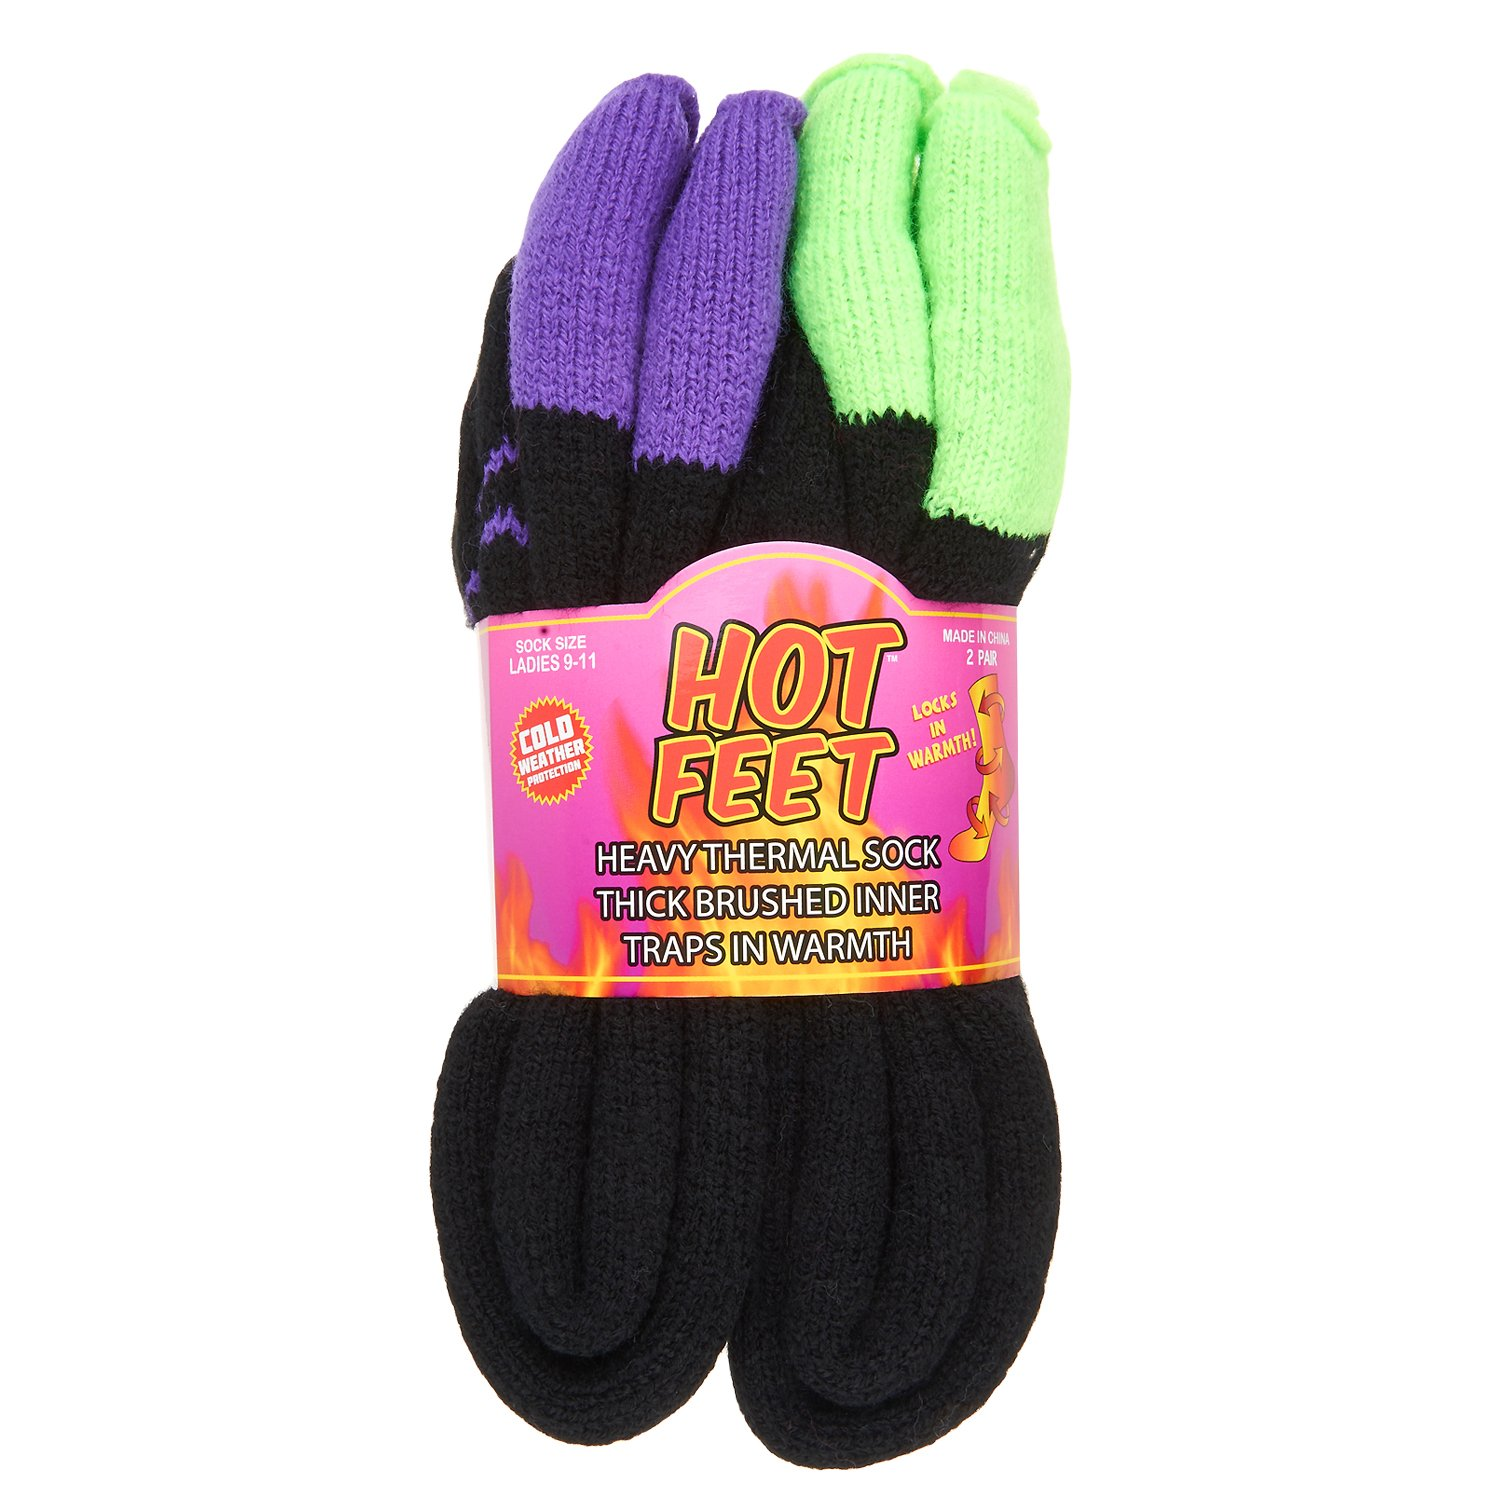 Hot Feet Women's 2 Pairs Heavy Thermal Socks - Thick Insulated Crew for Cold Weather; Sock Size 9-11, Shoe Size 4-10.5 (Apple Cuff and Grape Cuff)